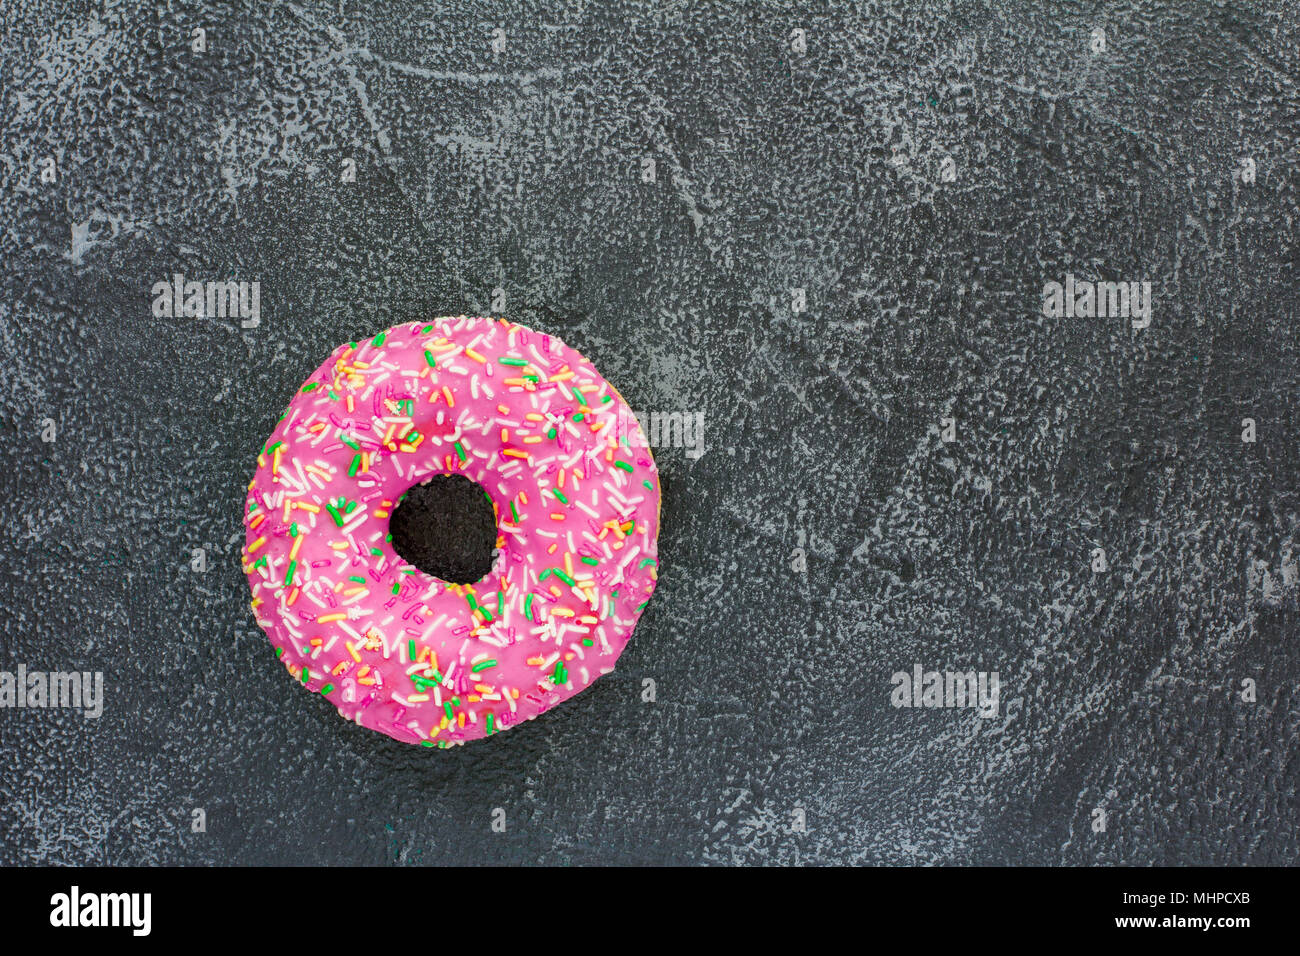 A single donut on dark stone background - Stock Image